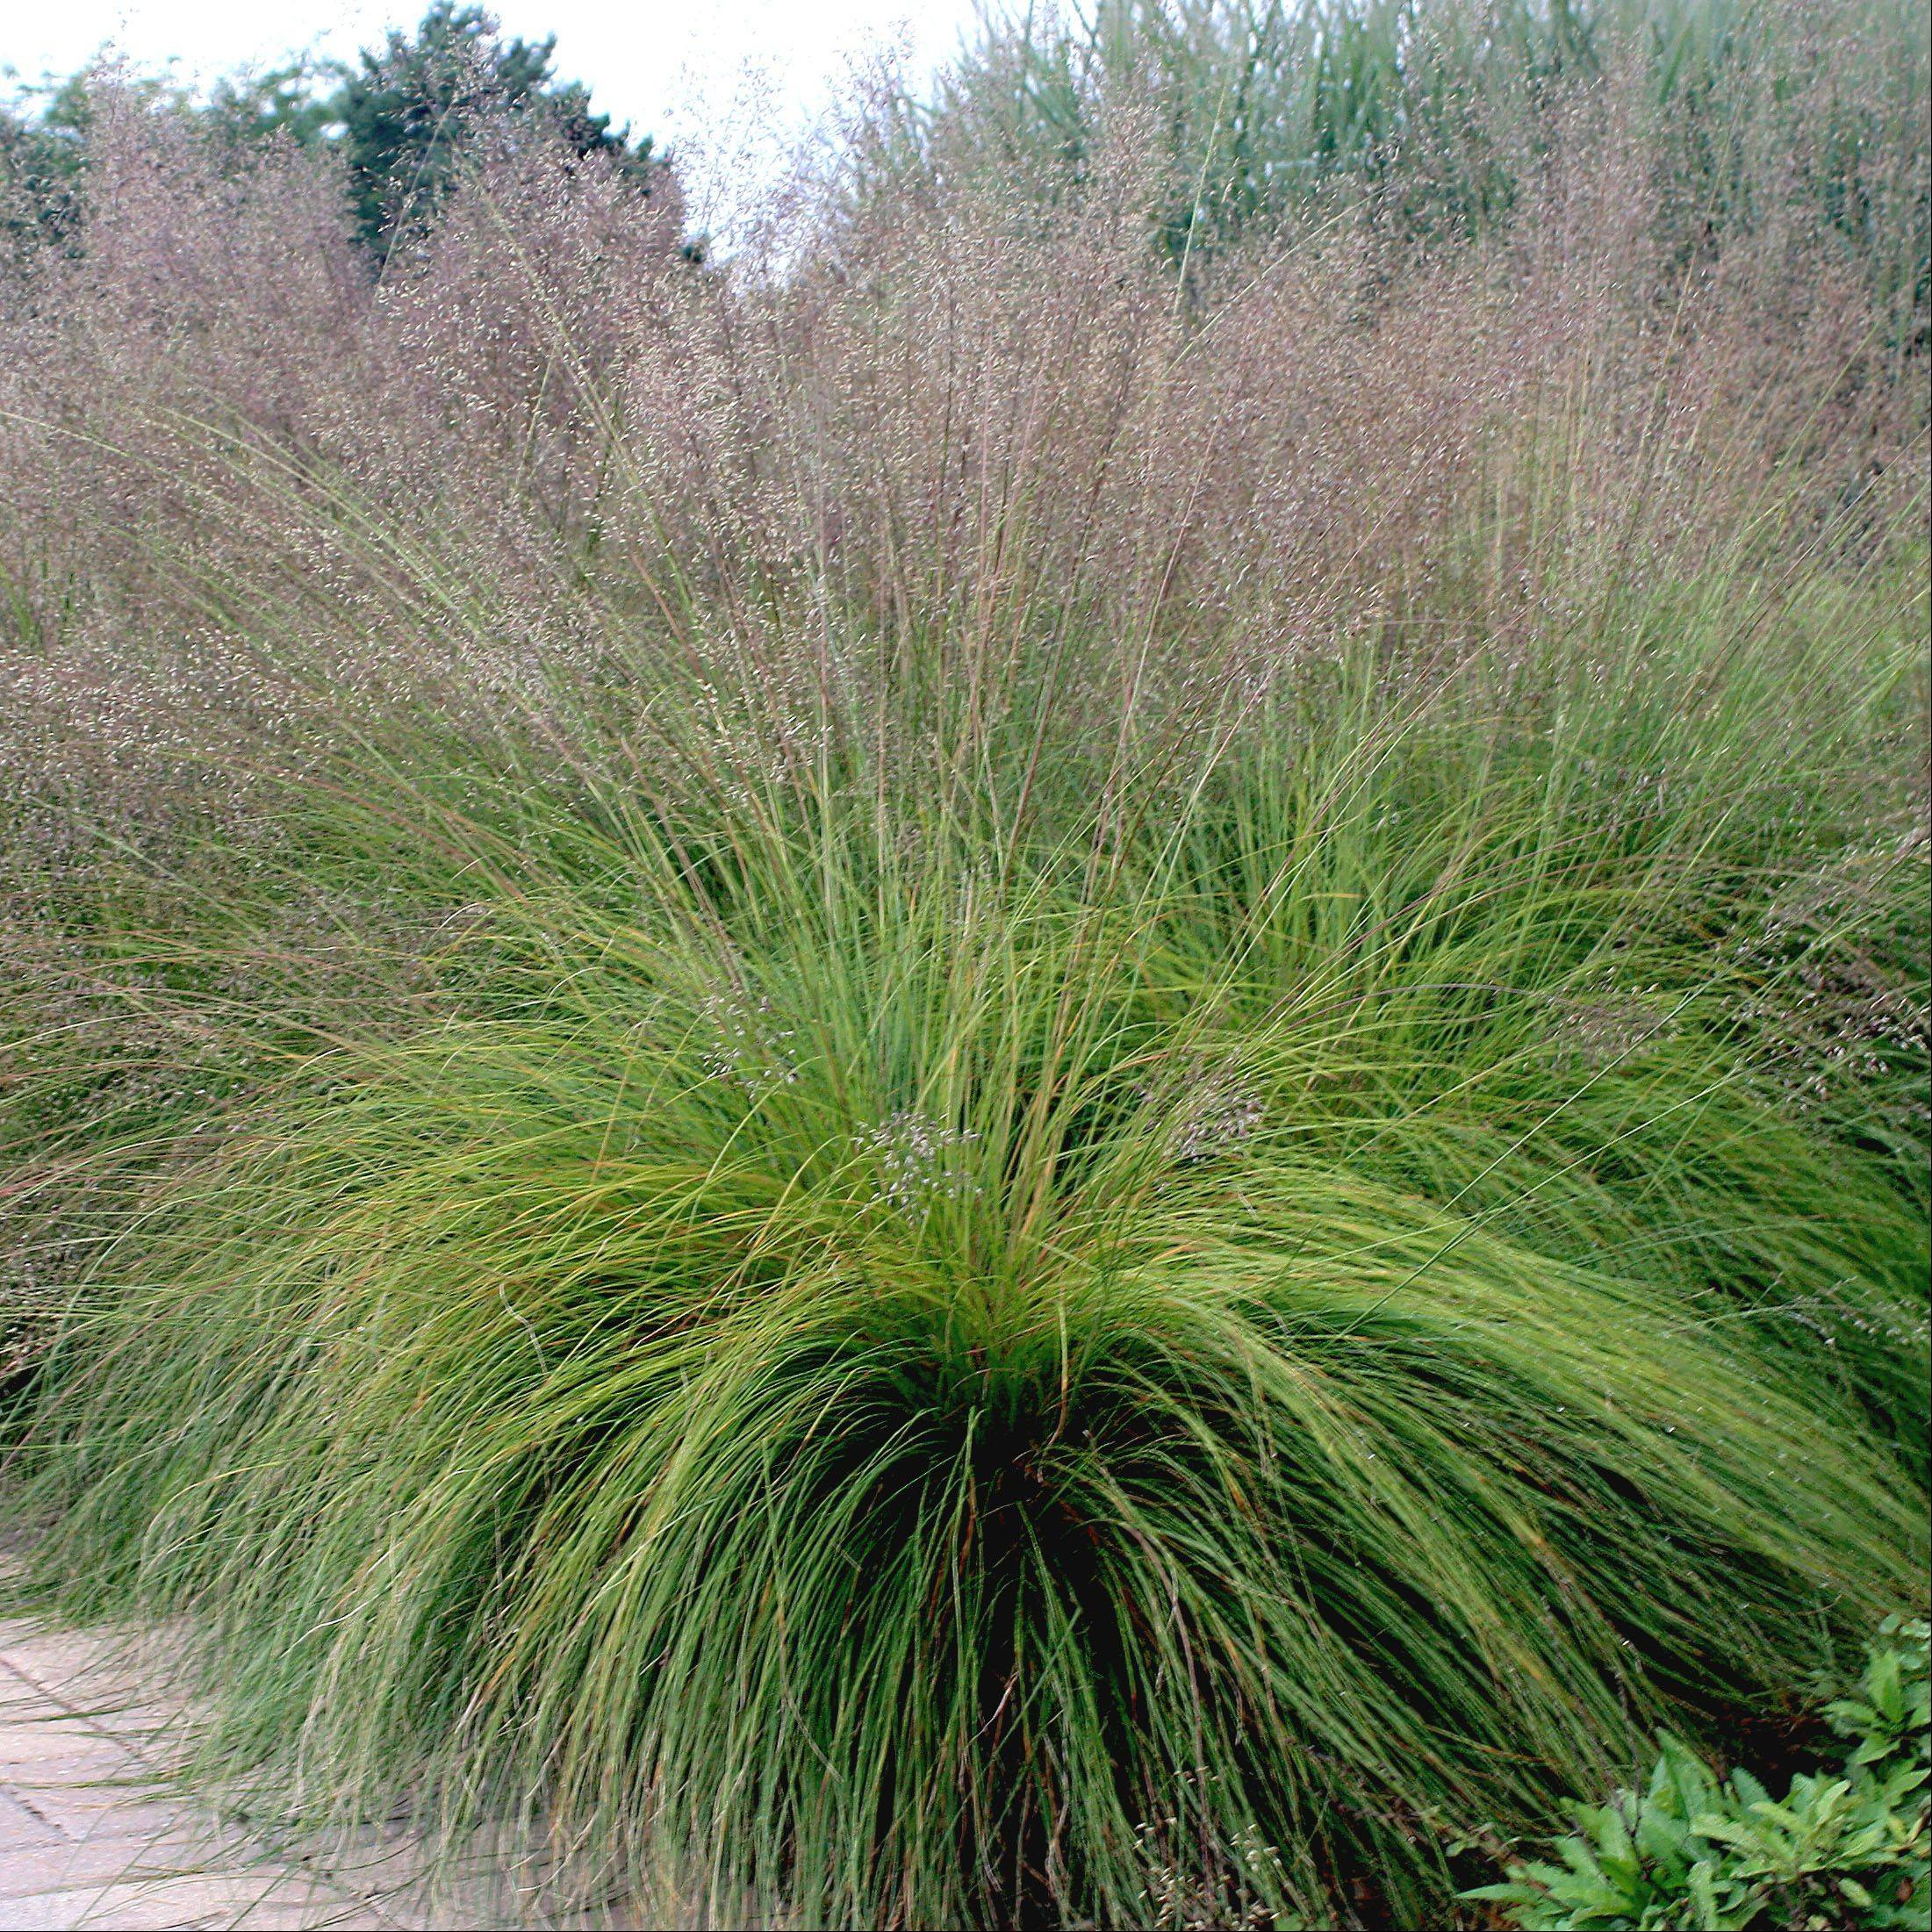 The native prairie plant Sporobolus heterolepis is commonly known as Prairie Dropseed, which grows to 3 to 4 feet in height.